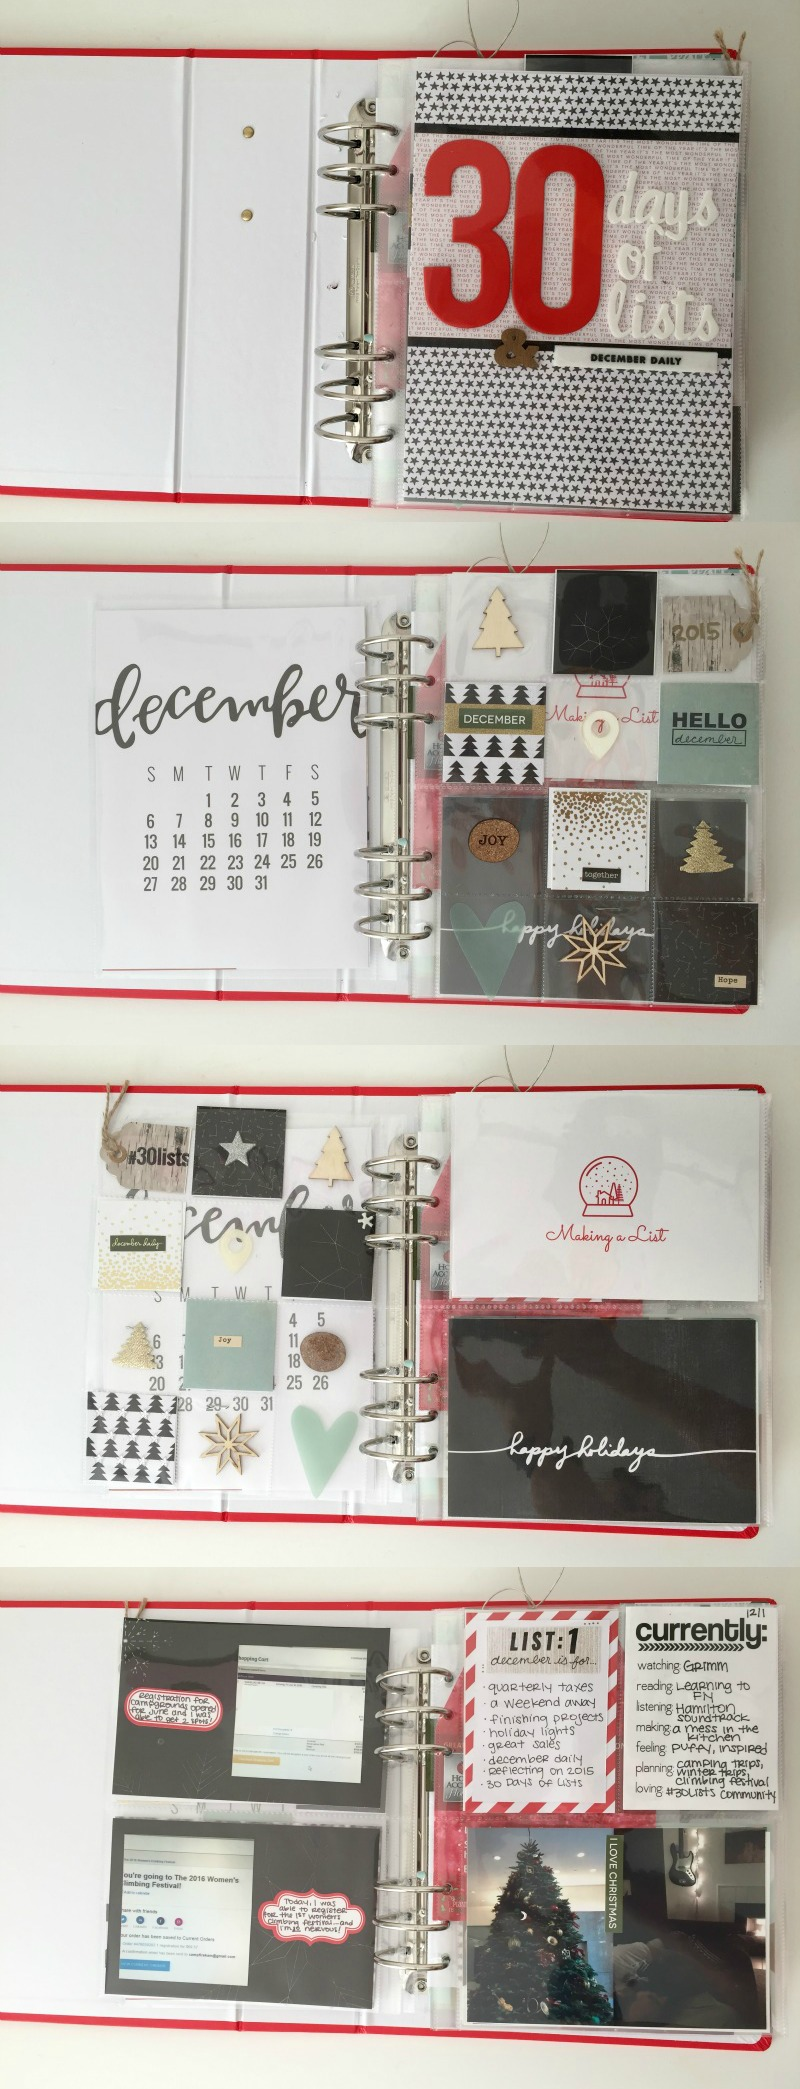 Pocket page scrapbook for December Daily® using kits from Ali Edwards and supplies from previous years. Kam of Campfire Chic also uses her December binder for the 30 Days of Lists challenge